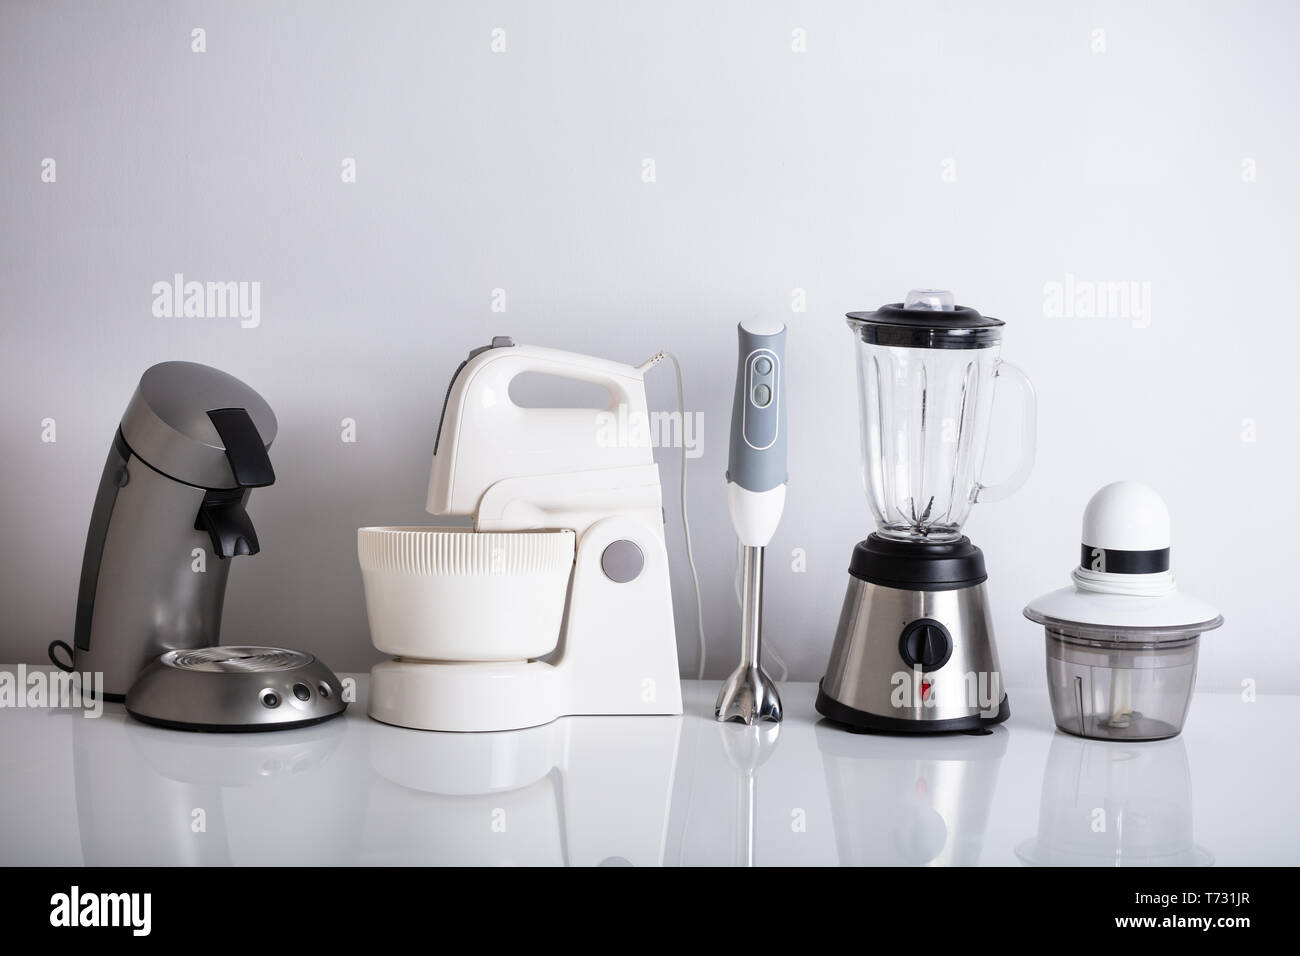 Variety Of Kitchen Appliances In Row Over Reflective Desk